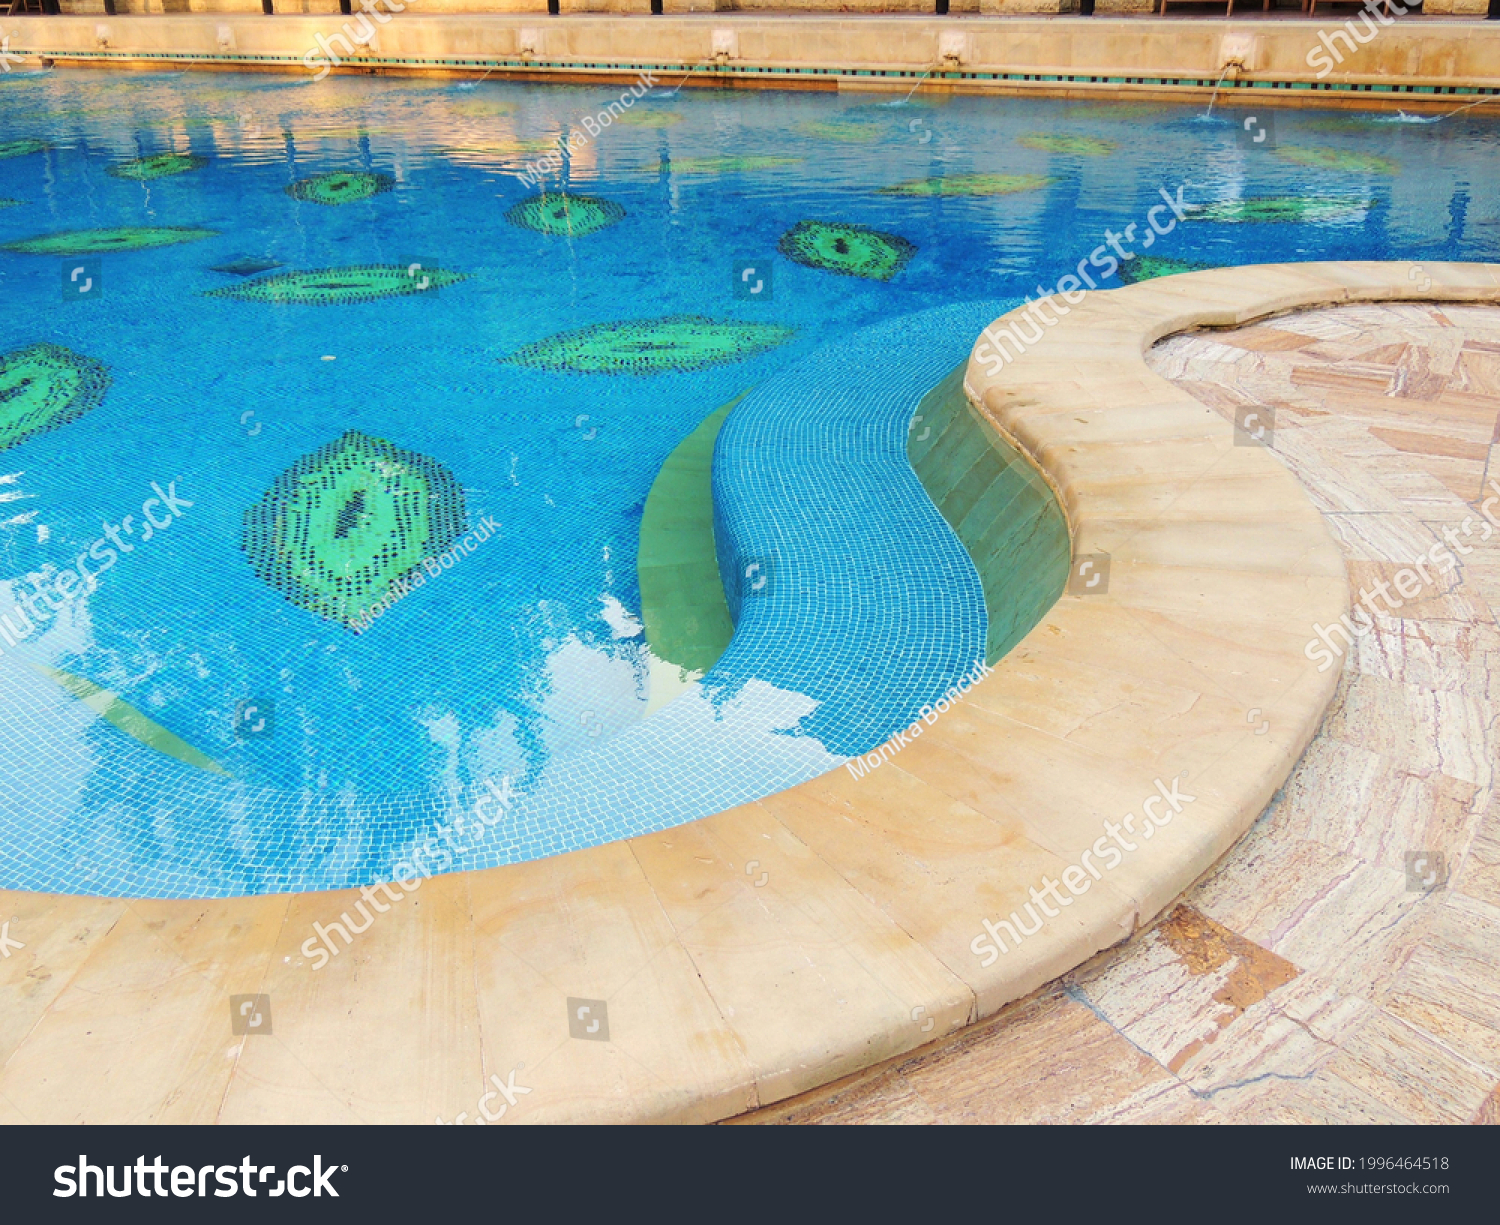 stock-photo-a-wonderful-pool-for-refresh